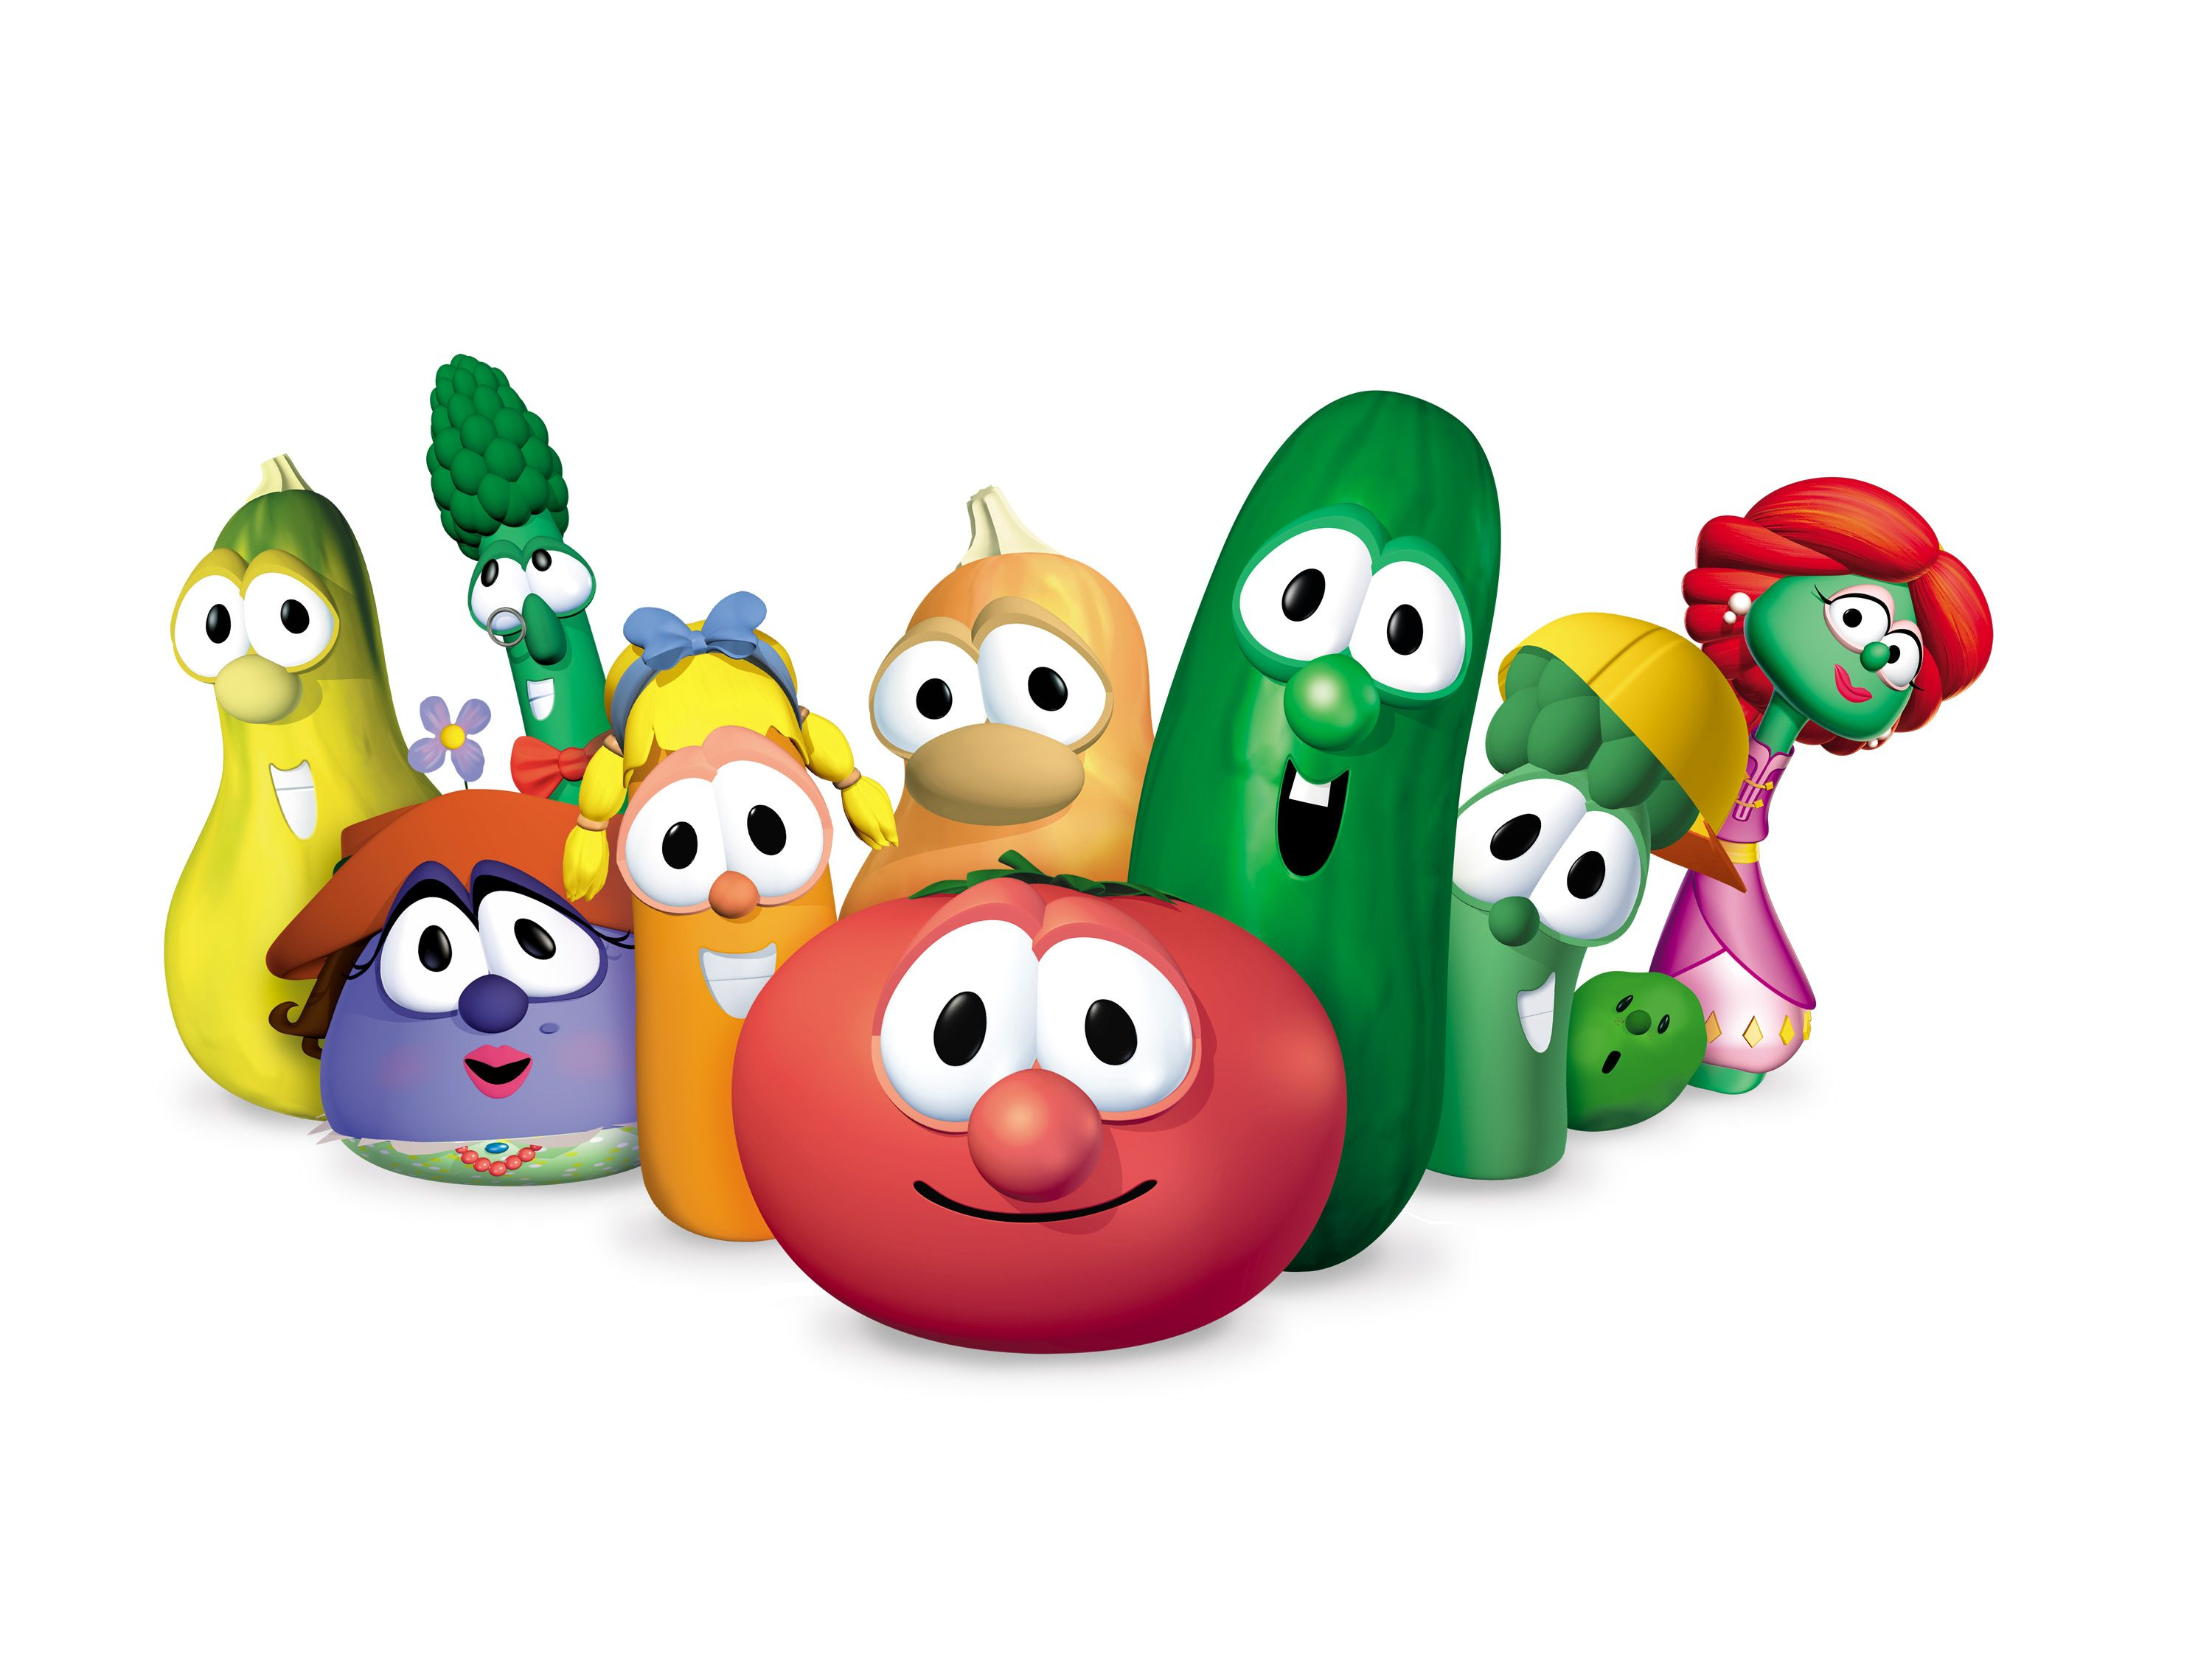 Veggie tale character pictures - Album on Picture-Inc.com | Rock ...